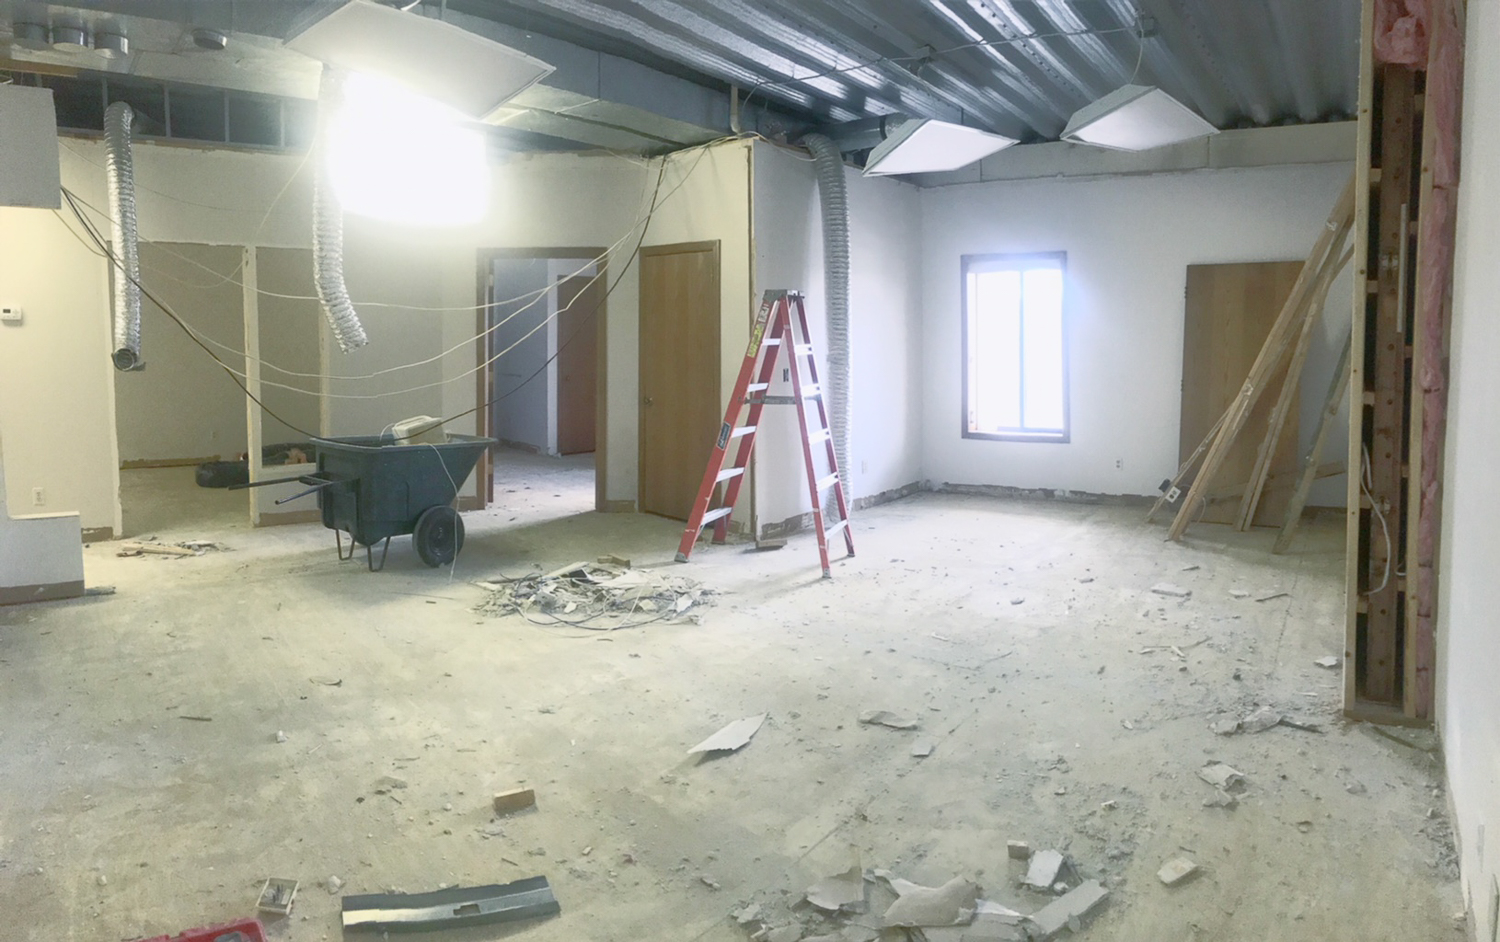 TIMBER! Walls down and drop ceiling out.